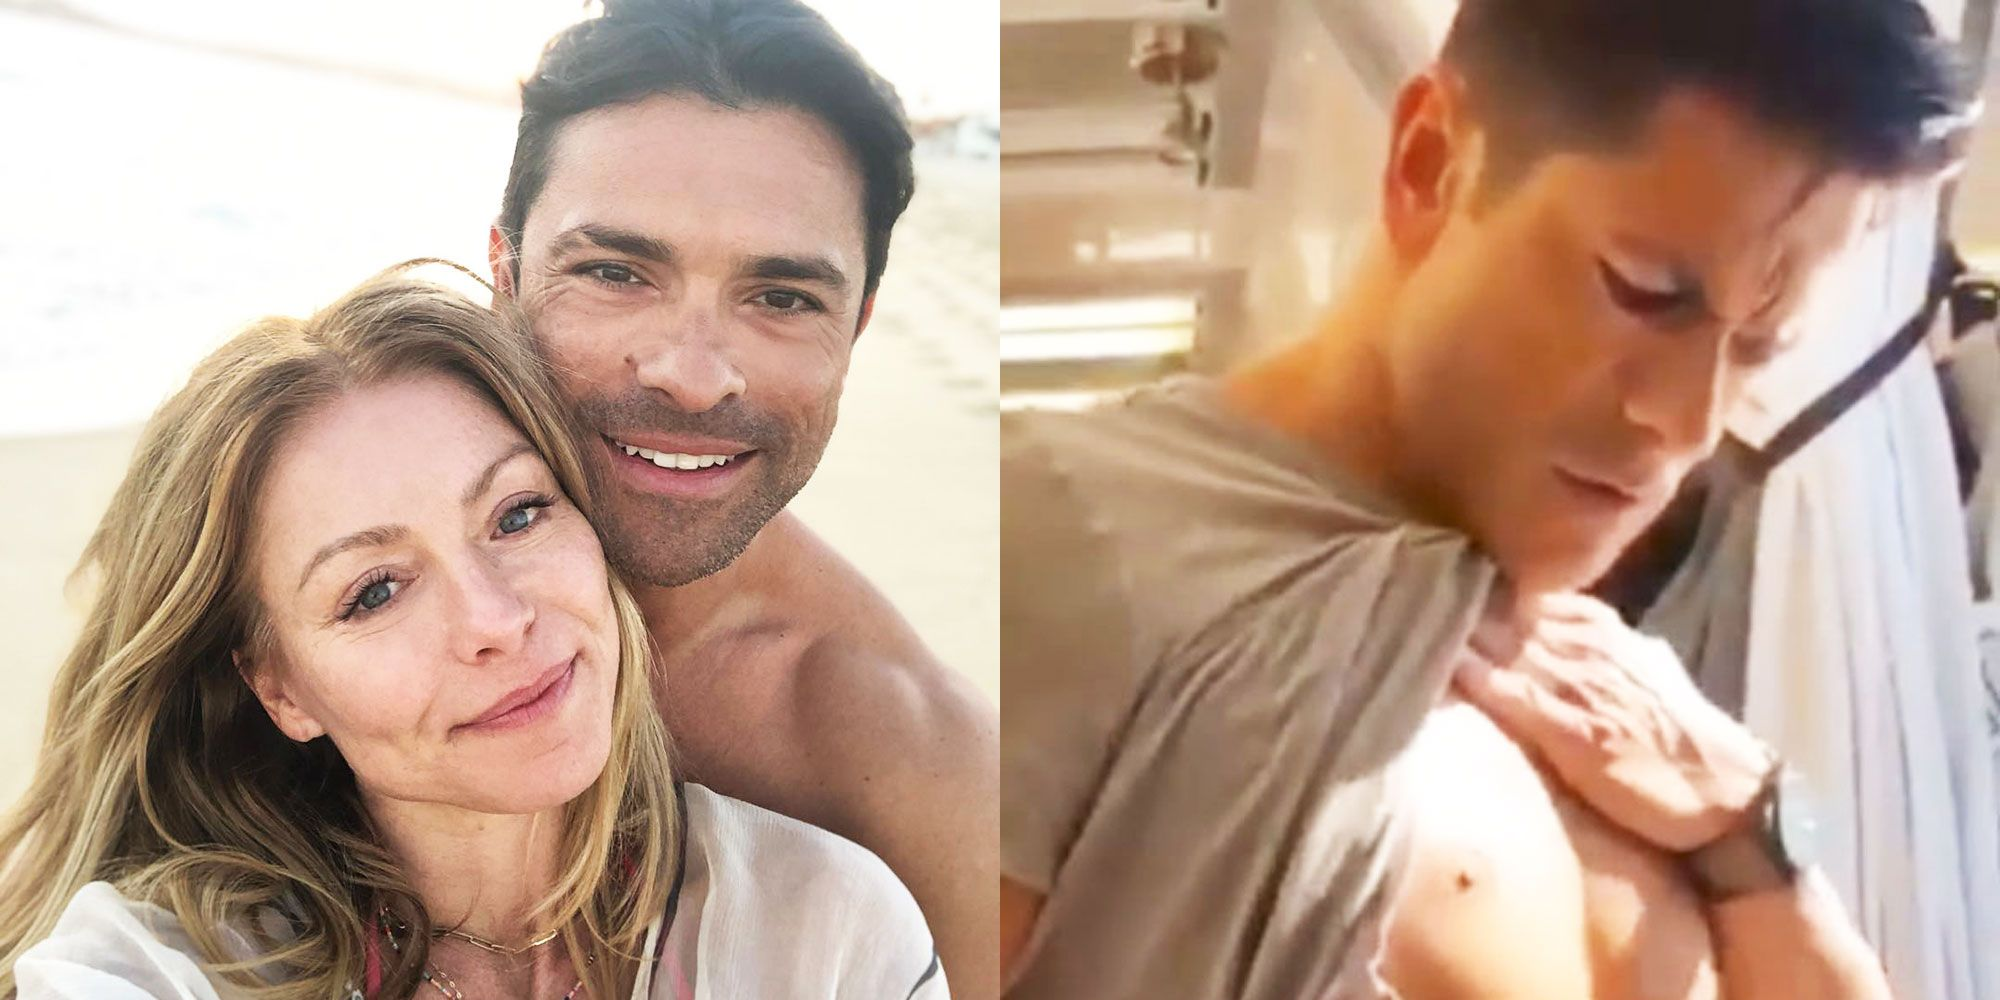 Kelly Ripa Shared A Video Of Marc Consuelos' Abs In An Epic Instagram Thirst Trap